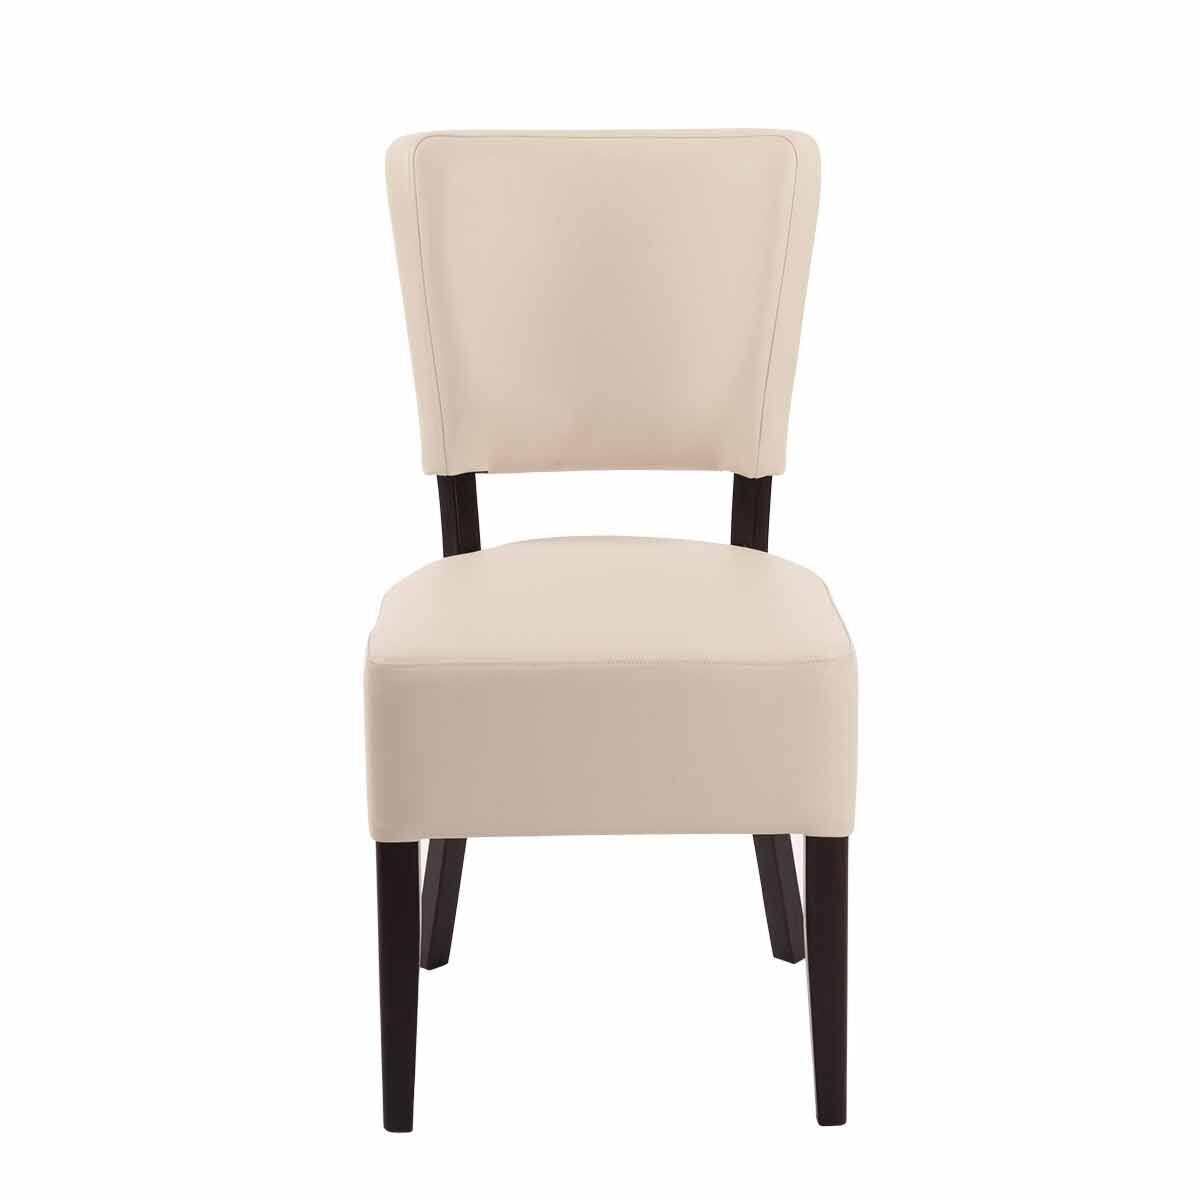 Tabilo Sena Faux Leather Dining Chair Cream